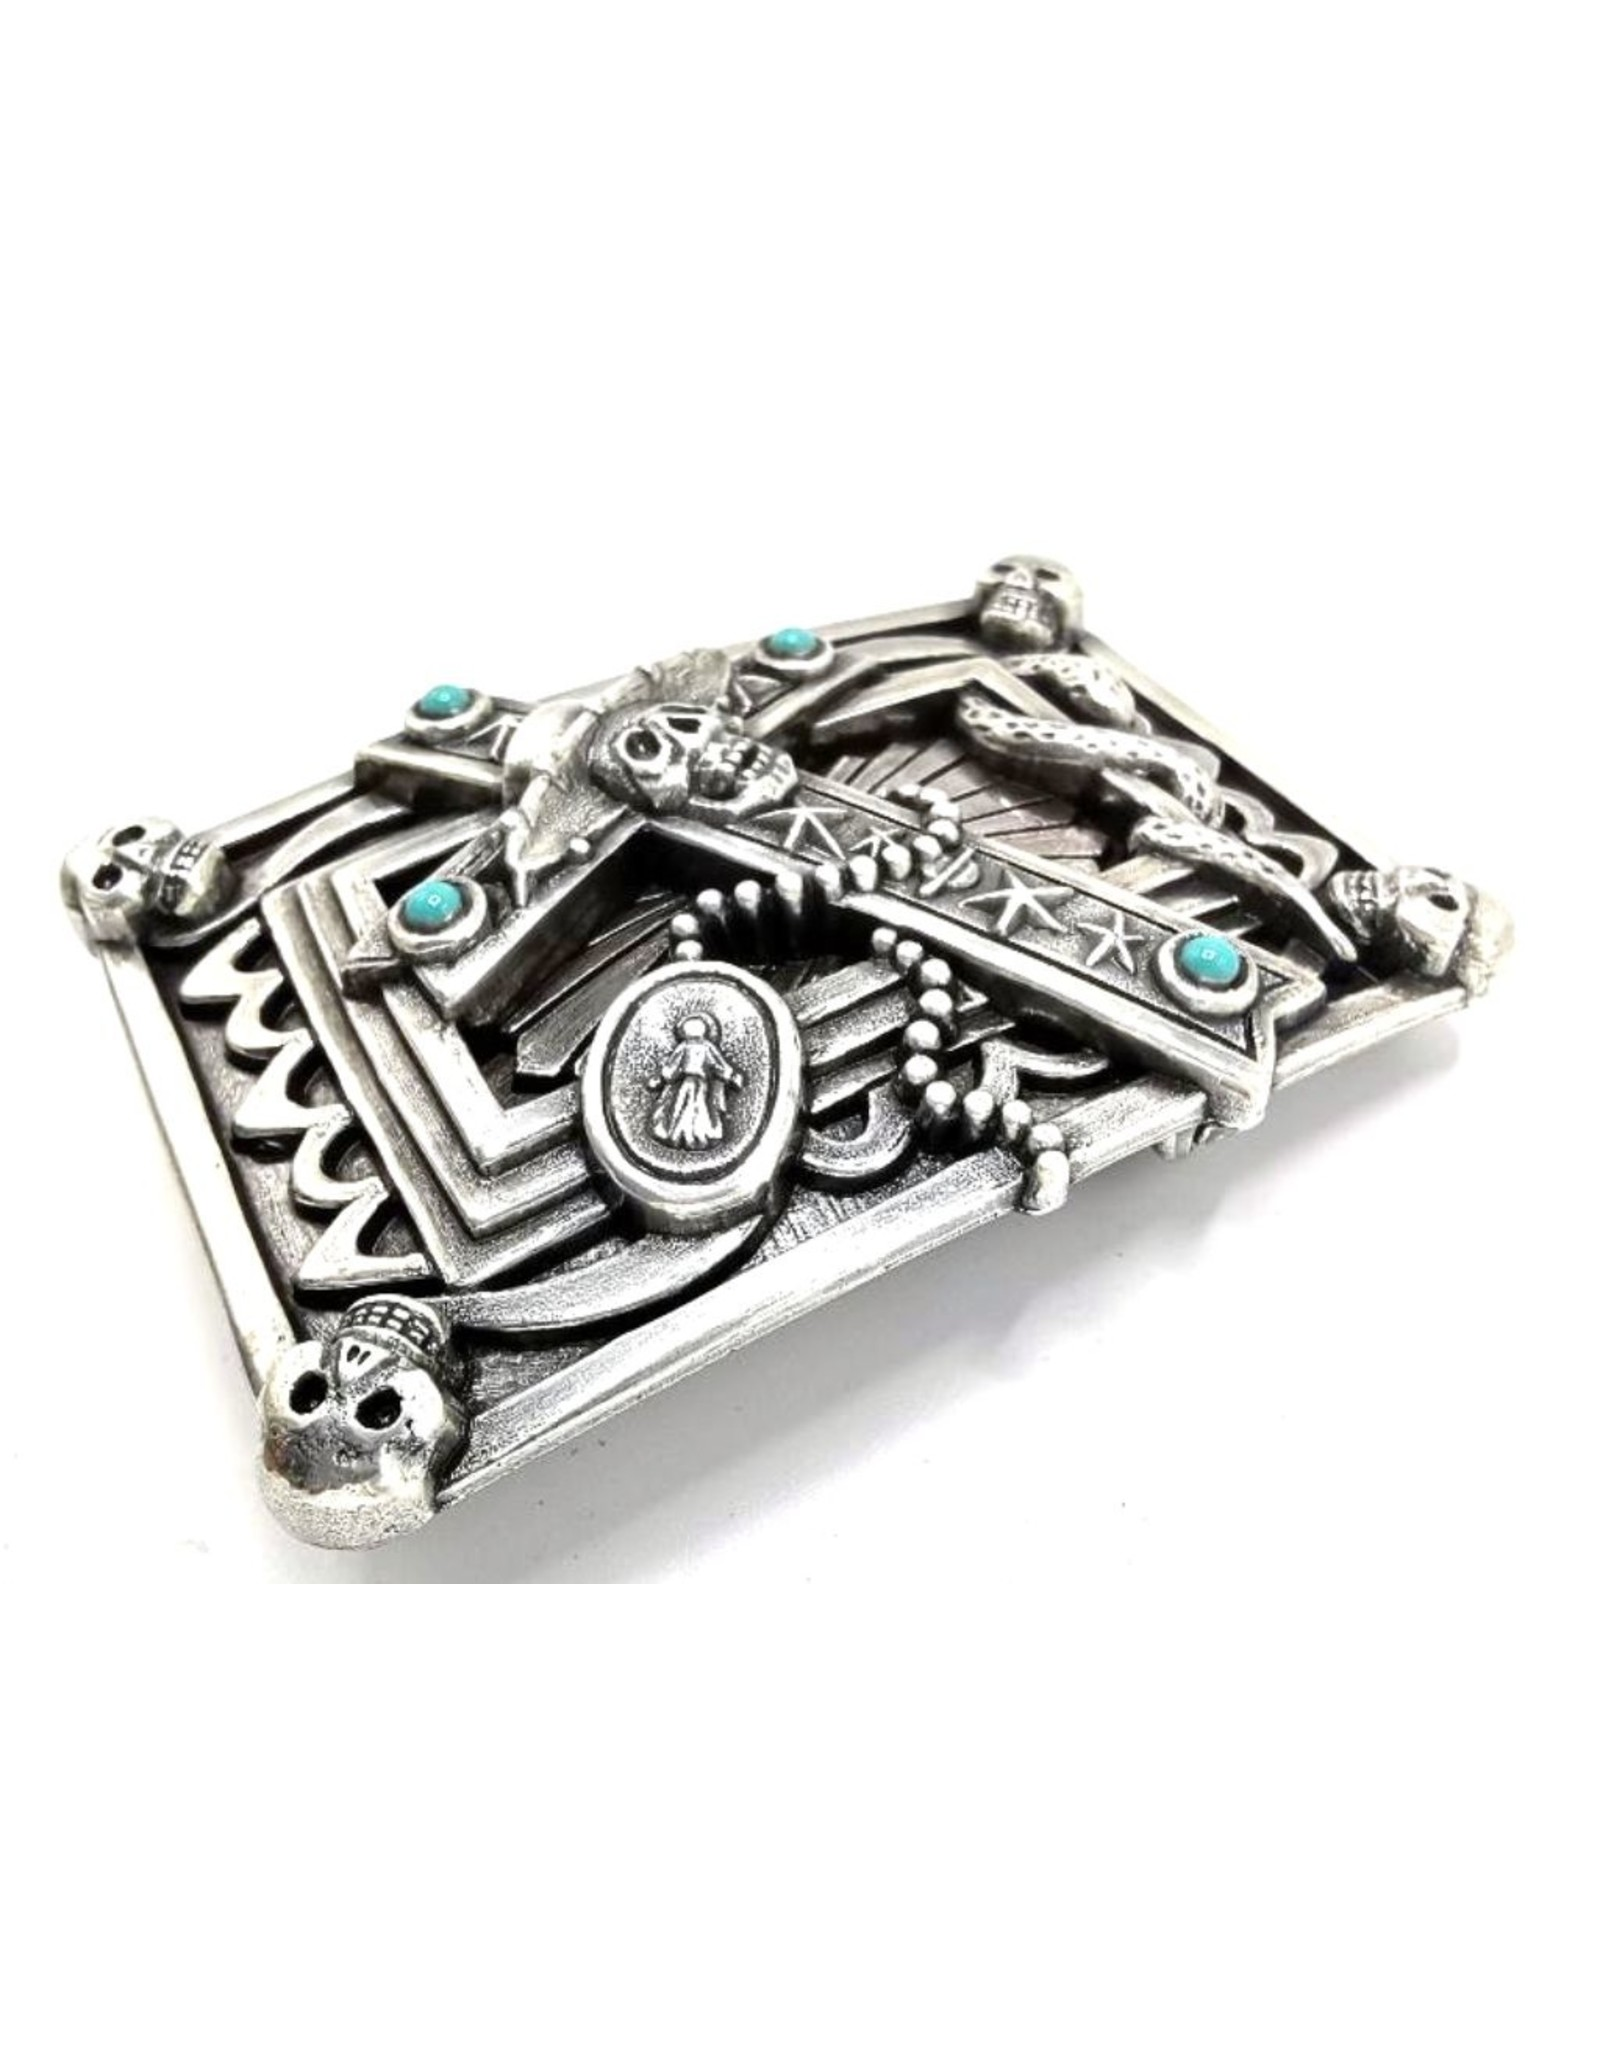 Acco Buckles - Buckle with Cross and Skulls - solid metal